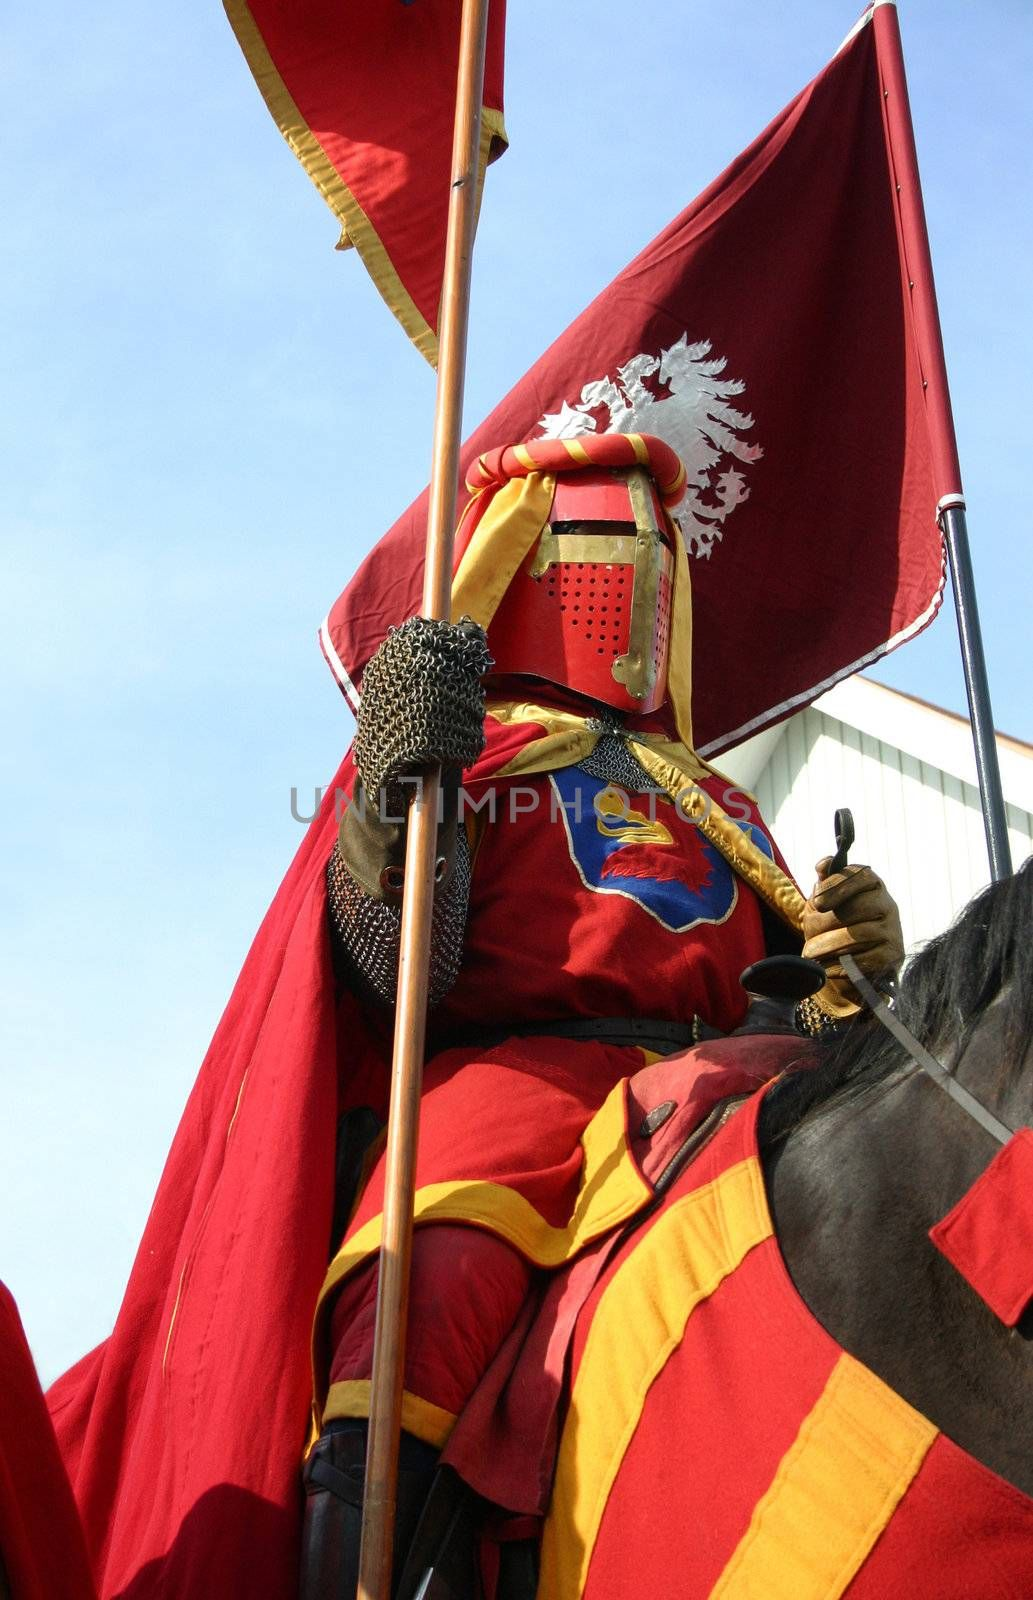 A knight riding by during Hova Riddarvecka, a weak of medieval festivities in the small town of Hova, Sweden